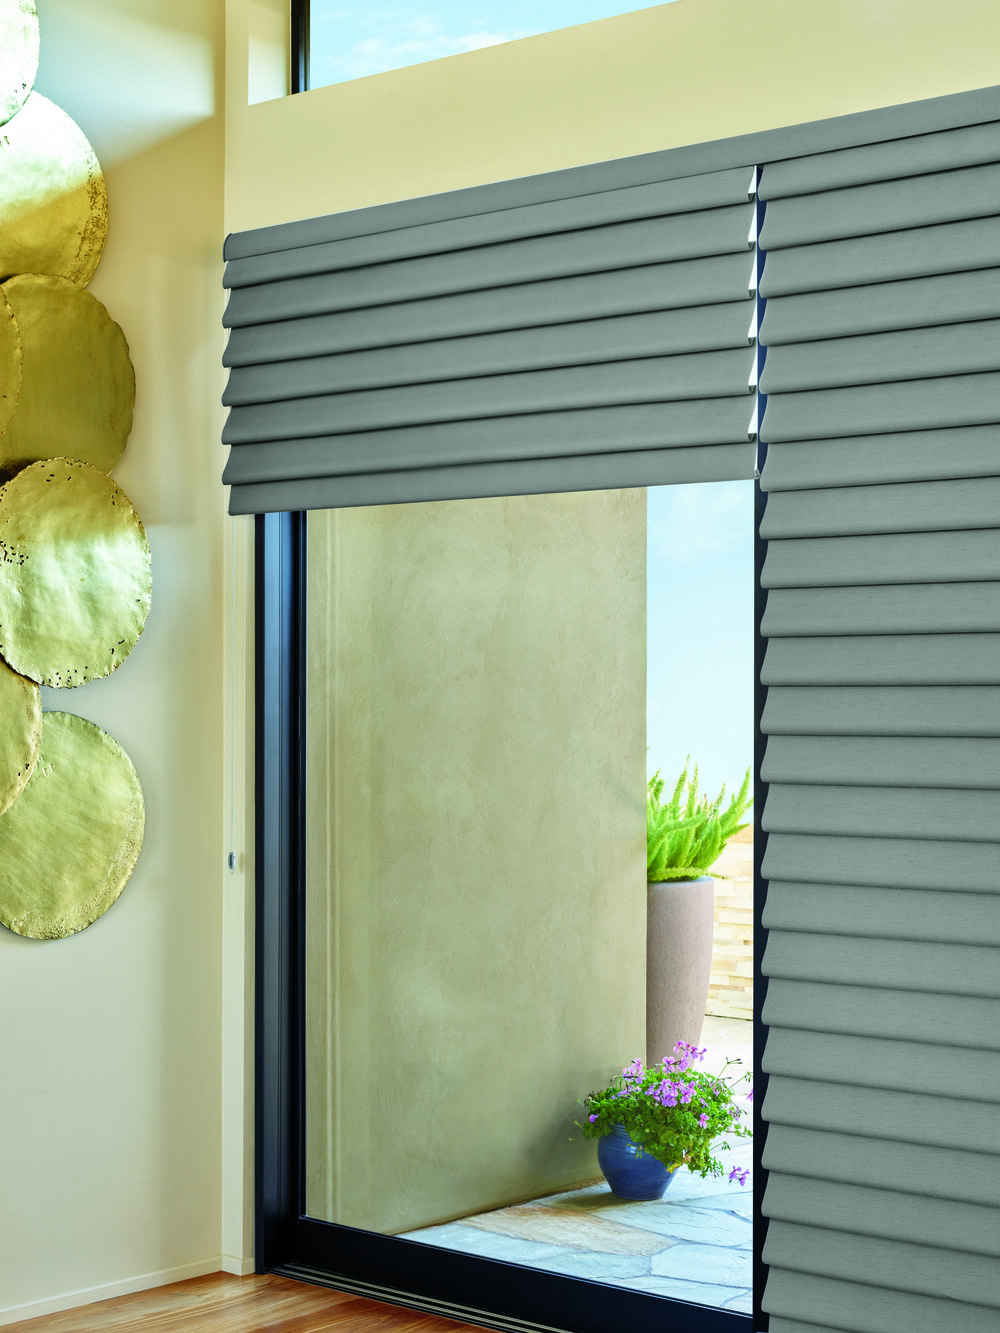 Modern Roman Shades - Uniform contoured or flat-fabric folds with no exposed rear cords align over our sliding glass door.  Now available with the Duo-Lite feature.Pros: When you want a roman shade for a patio door, do consider Modern Roman Shades.  Fabric folds are lighter and align easier for two-on-one applications.  Cons:  Modern Roman Shades do not provide all of the fabric selections and styles that a Custom Roman Shade will provide.  Option:  Bring the two together for one fabulous look.  Create a custom hobbled-style valance in any fabric of your choosing to go over your Modern Roman Shades. Voila!